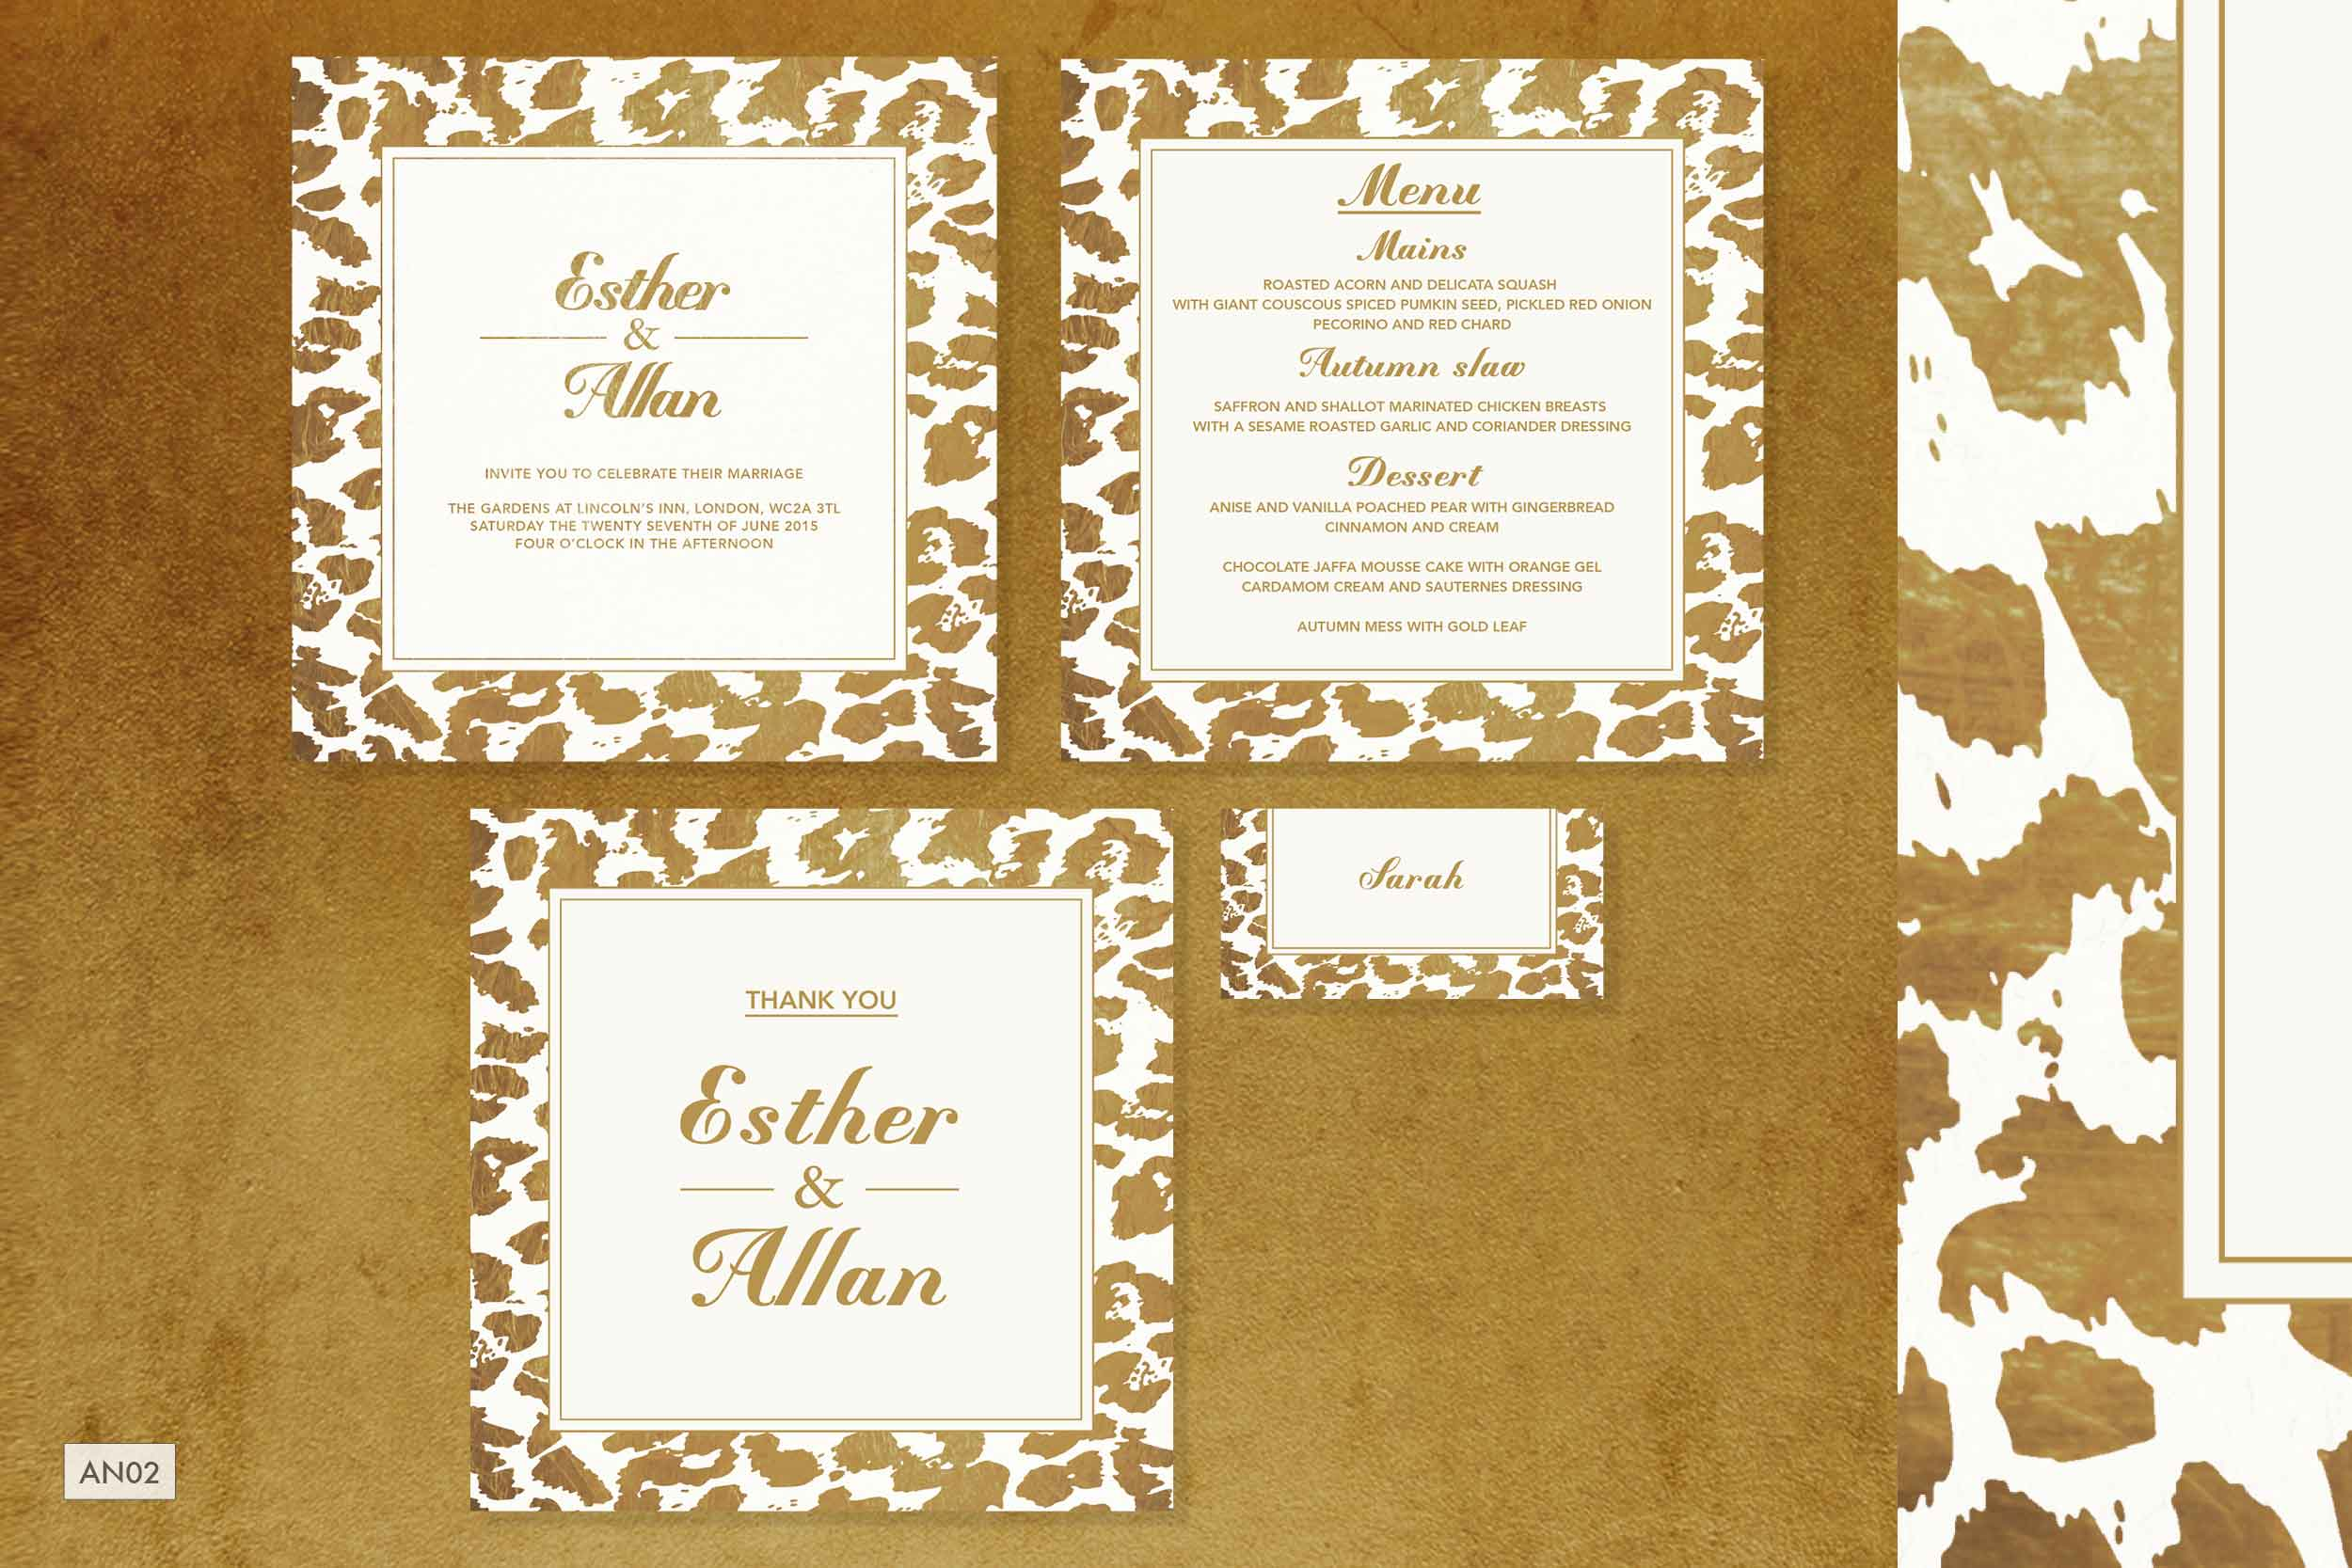 ananya-wedding-stationery-animal-print-scroll-gallery9.jpg